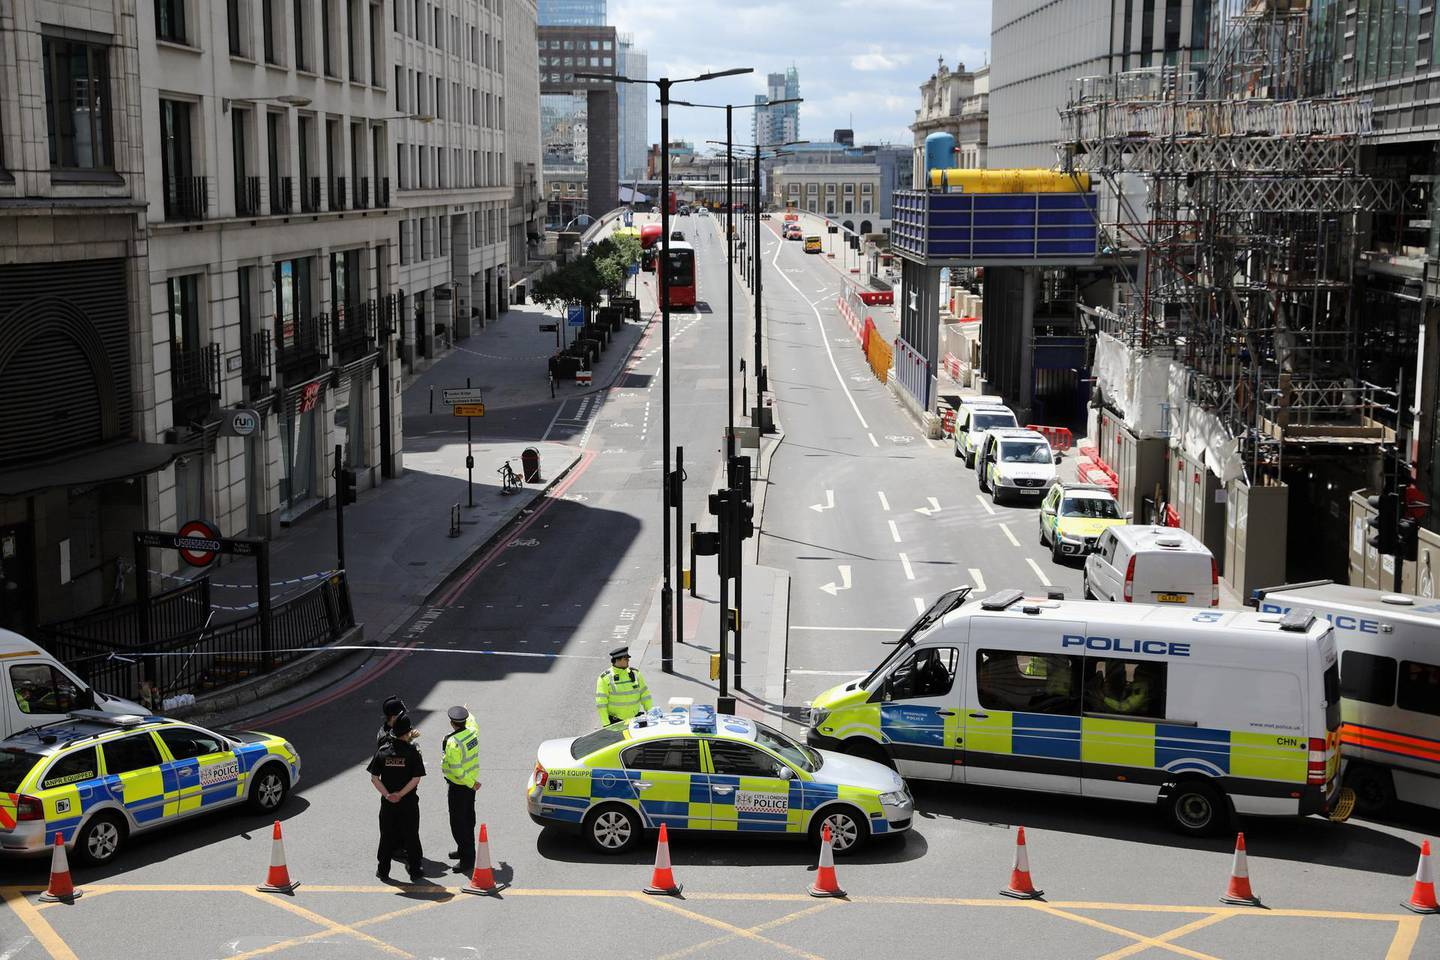 LONDON, ENGLAND - JUNE 04:  Police operate a cordon on the North side of London Bridge as forensic officers work after last night's terrorist attack on June 4, 2017 in London, England. Police continue to cordon off an area after responding to terrorist attacks on London Bridge and Borough Market where 7 people were killed and at least 48 injured last night. Three attackers were shot dead by armed police.  (Photo by Dan Kitwood/Getty Images)